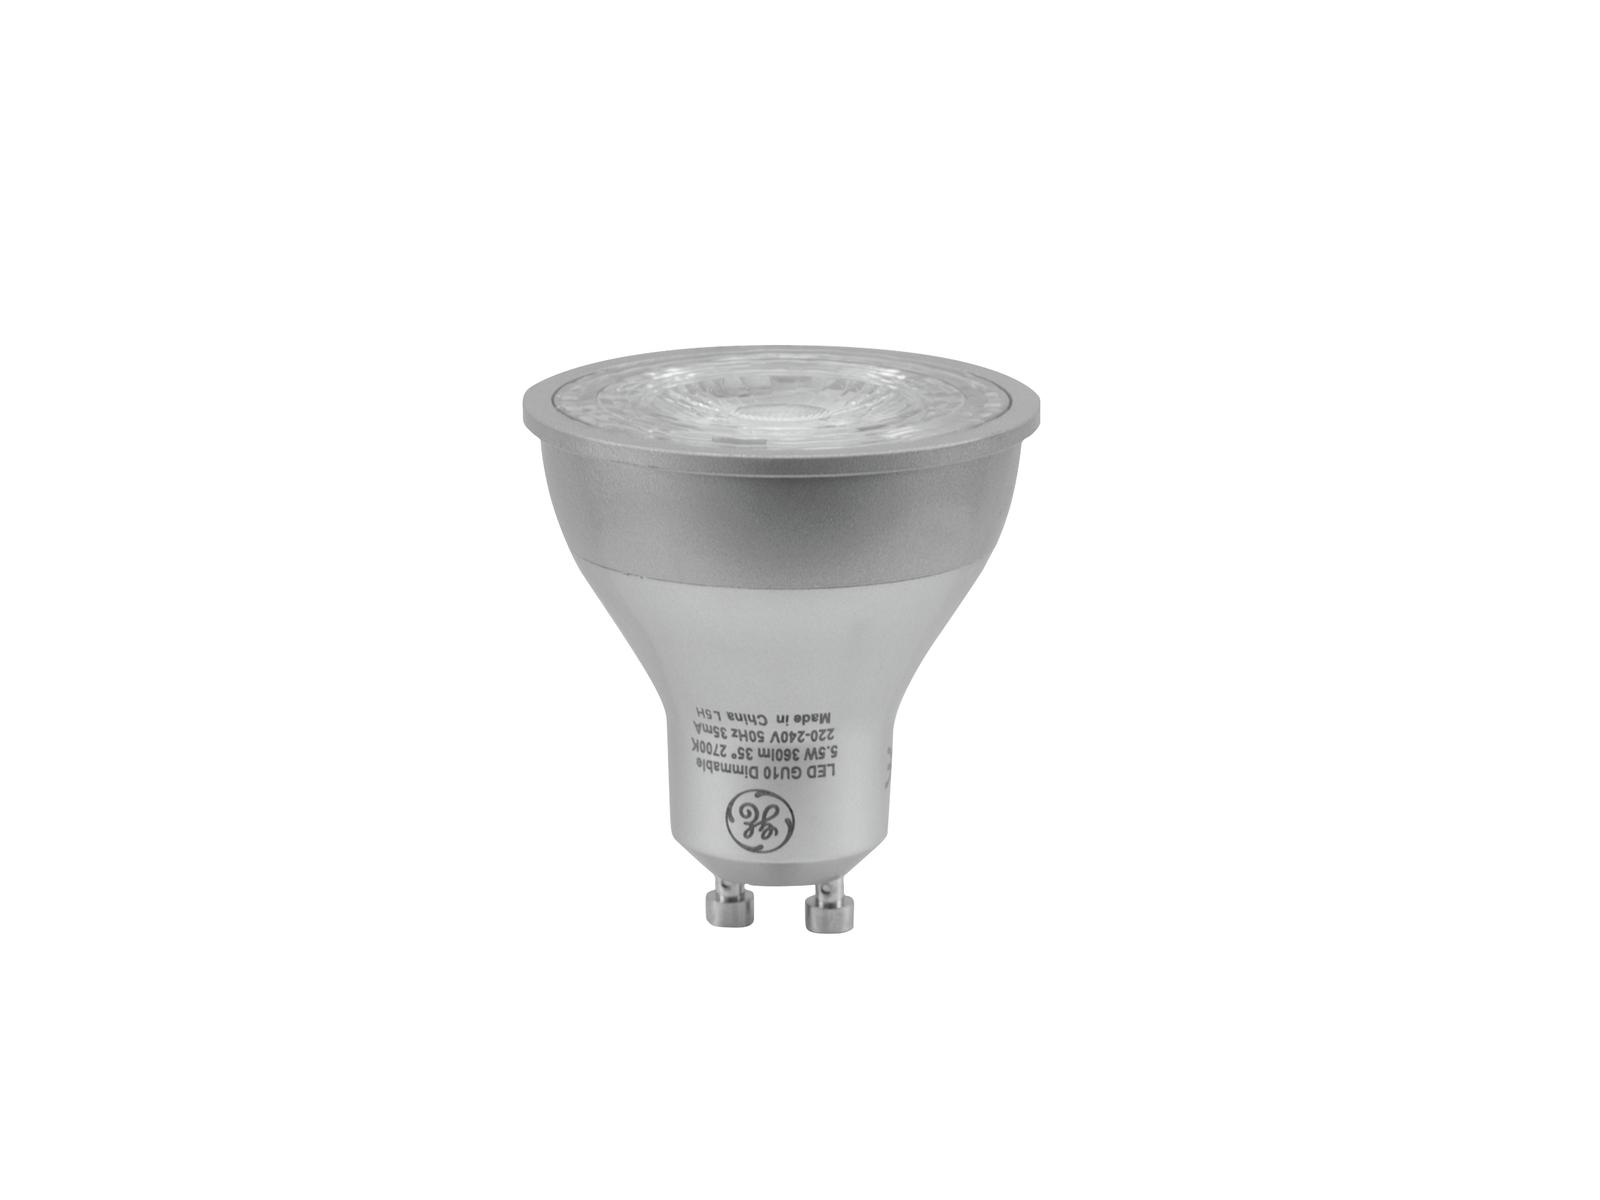 Lampada a led, argento, dimmer